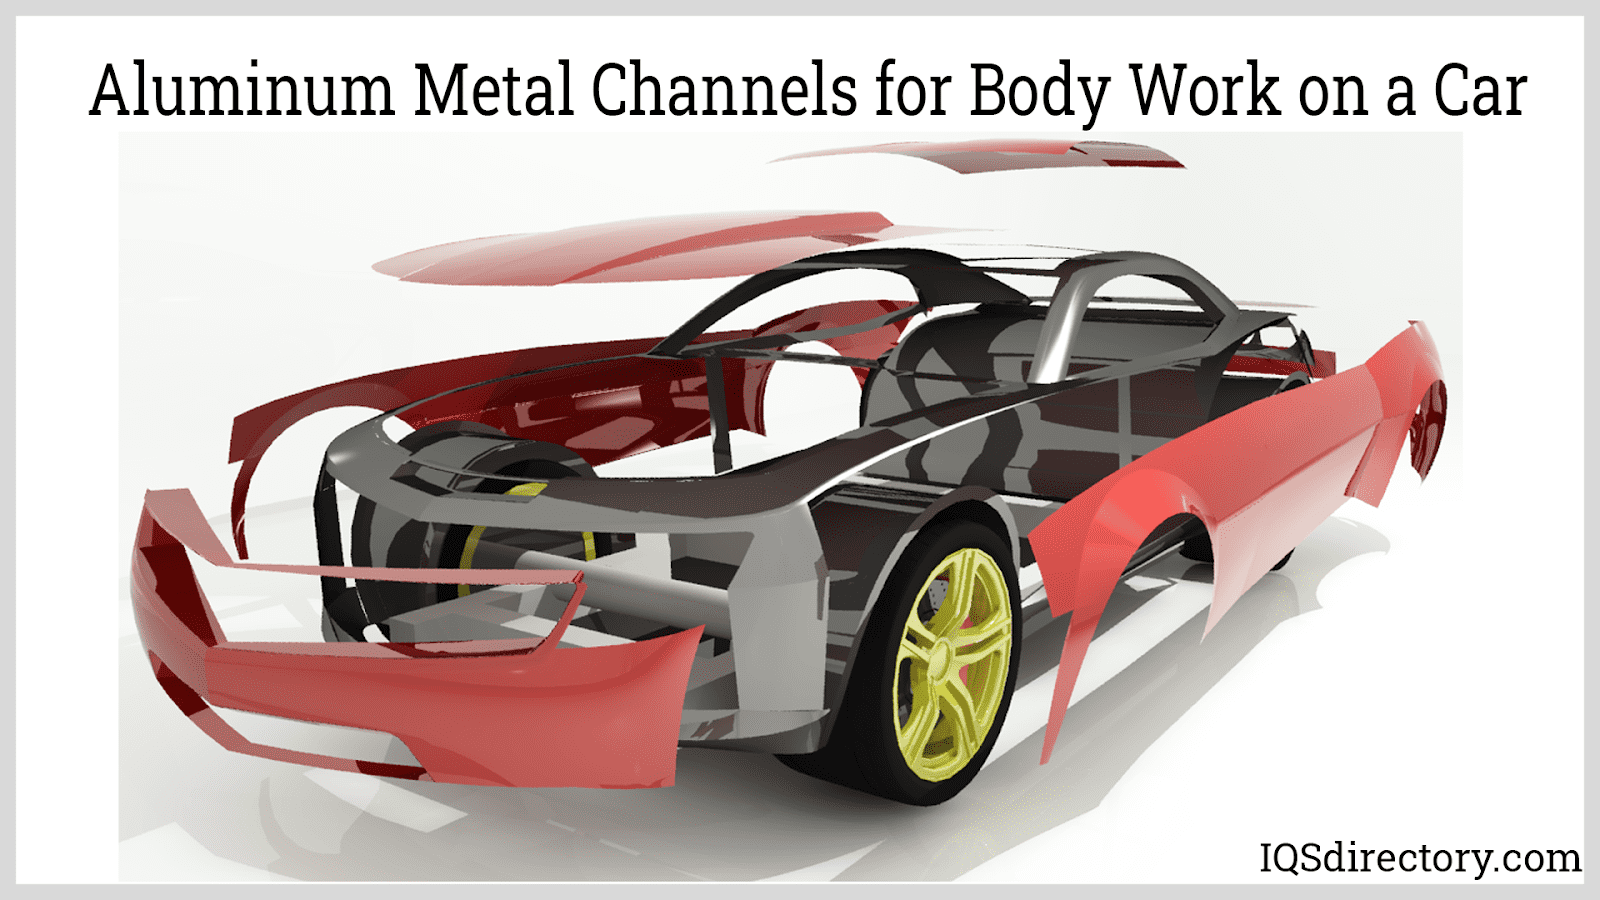 Aluminum Metal Channels for Body Work on a Car